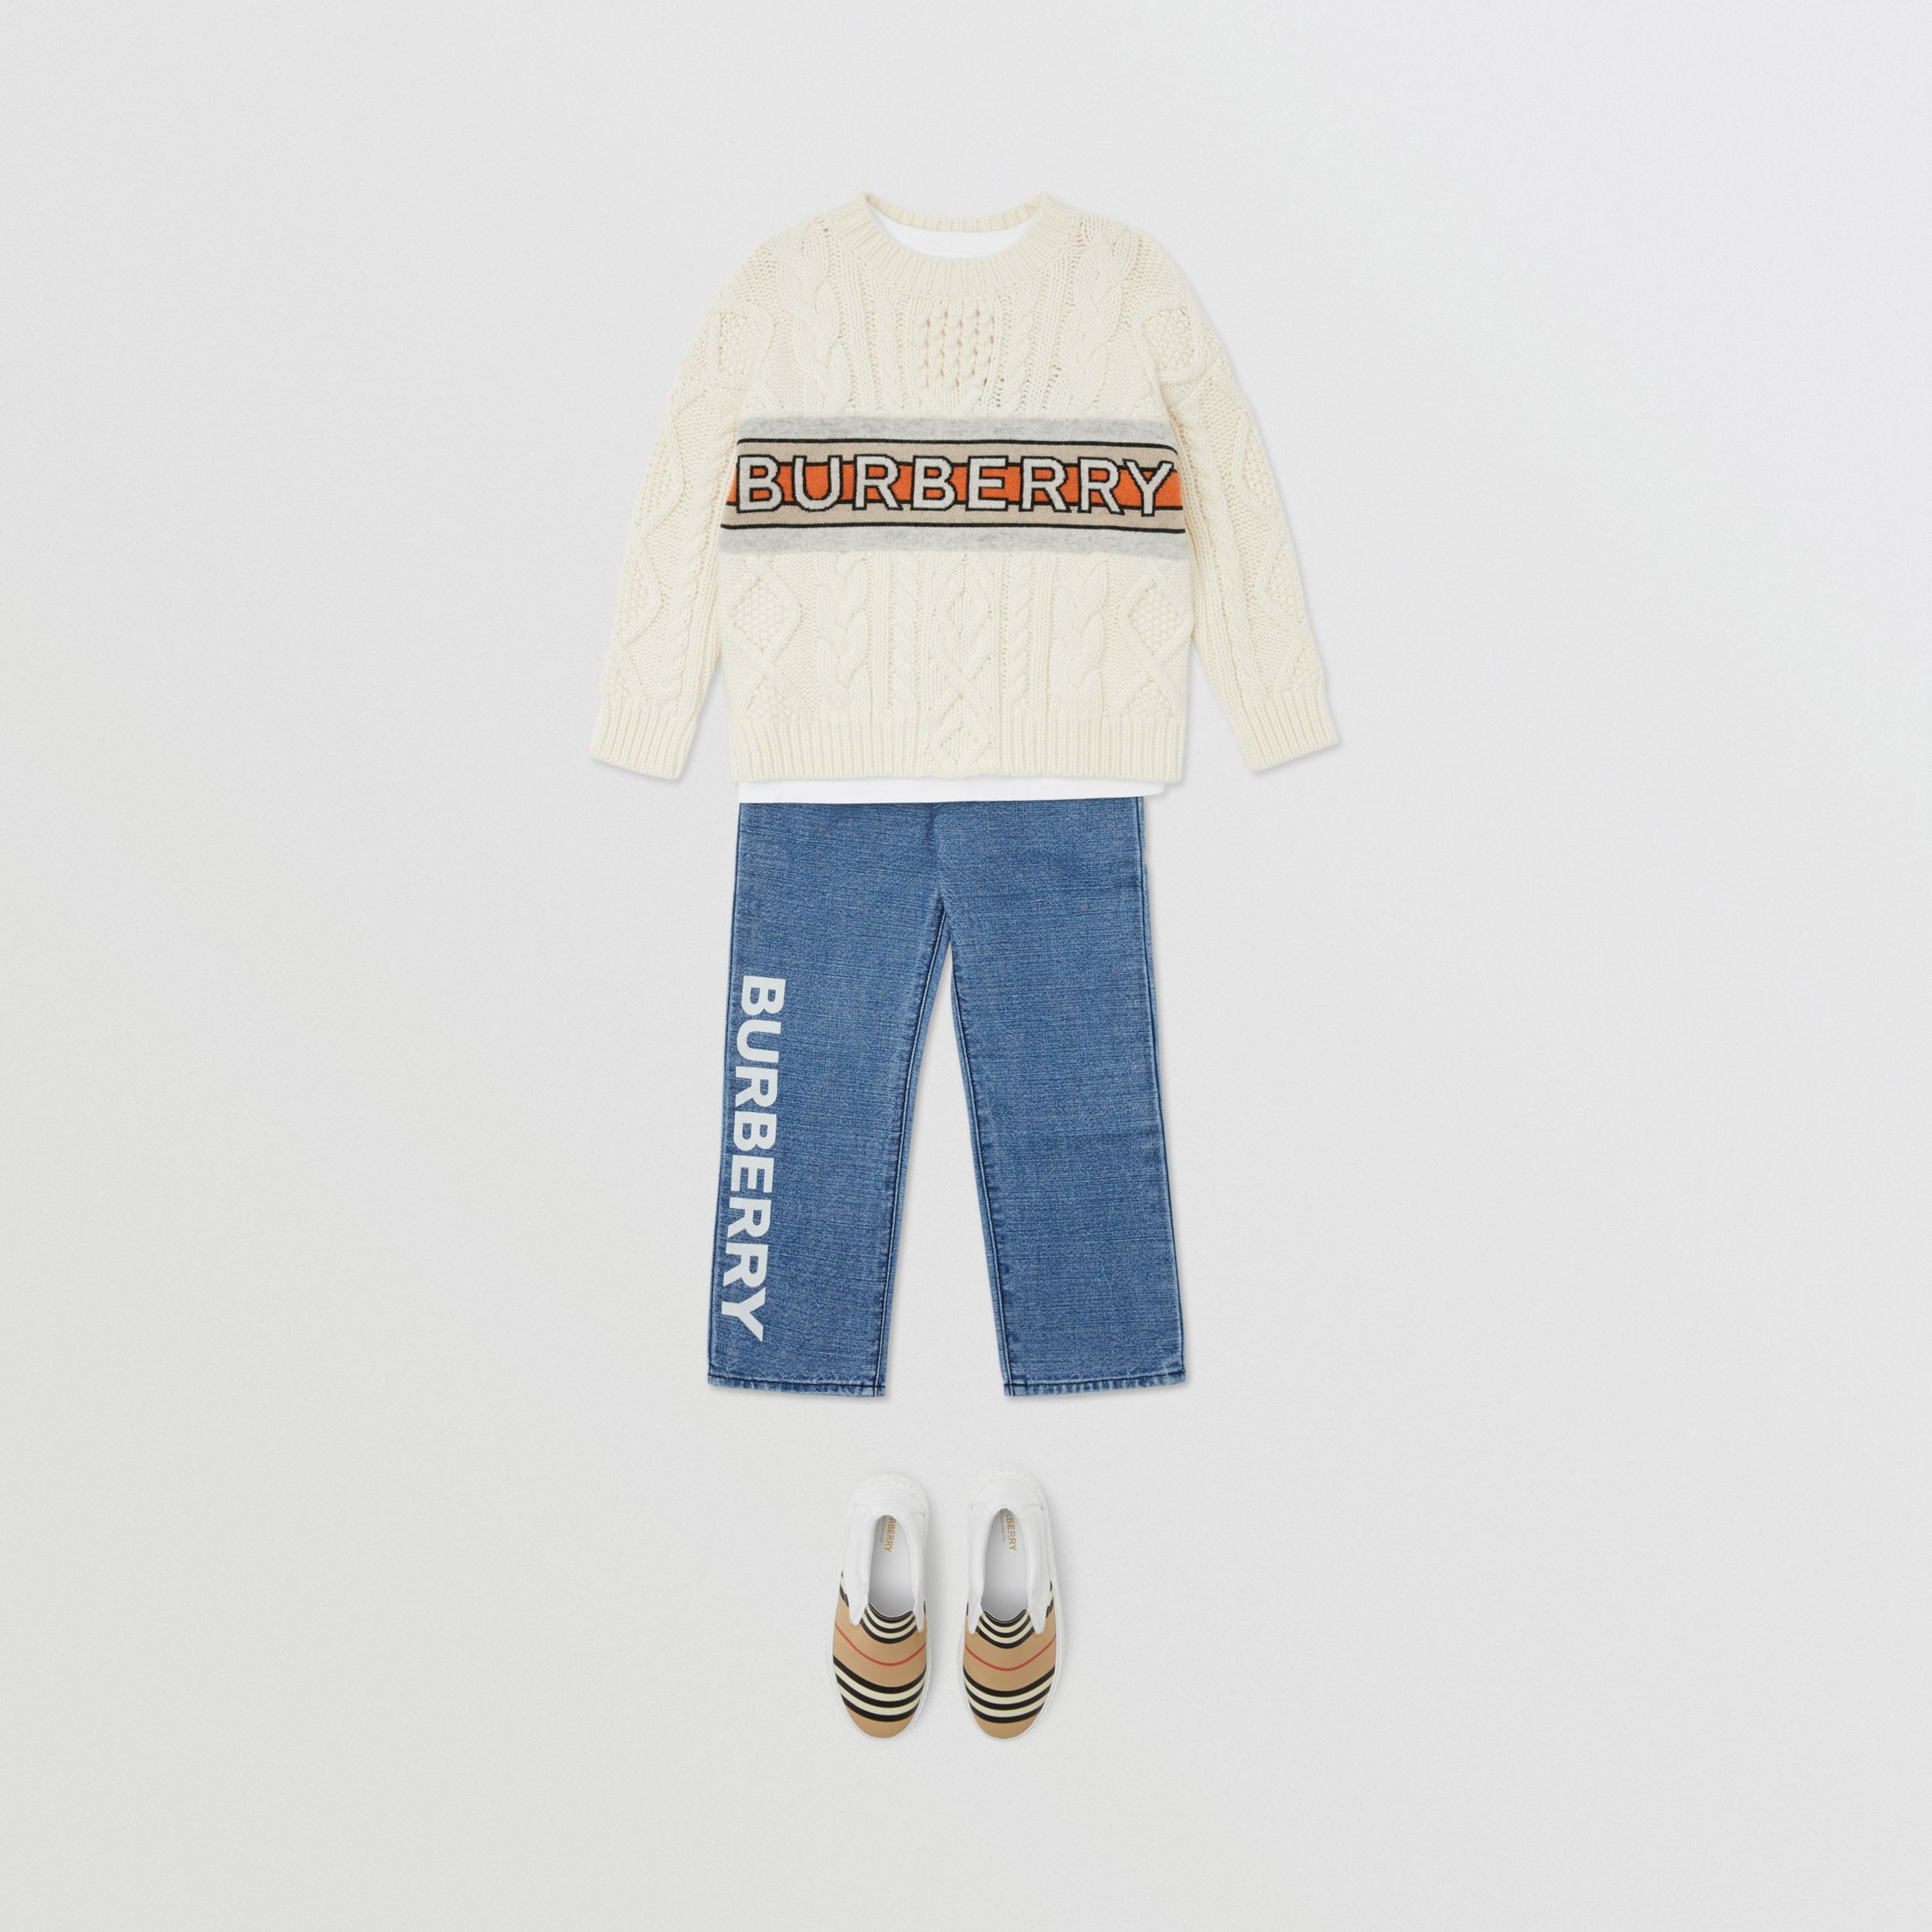 Logo Print Japanese Denim Jeans in Indigo | Burberry - 3